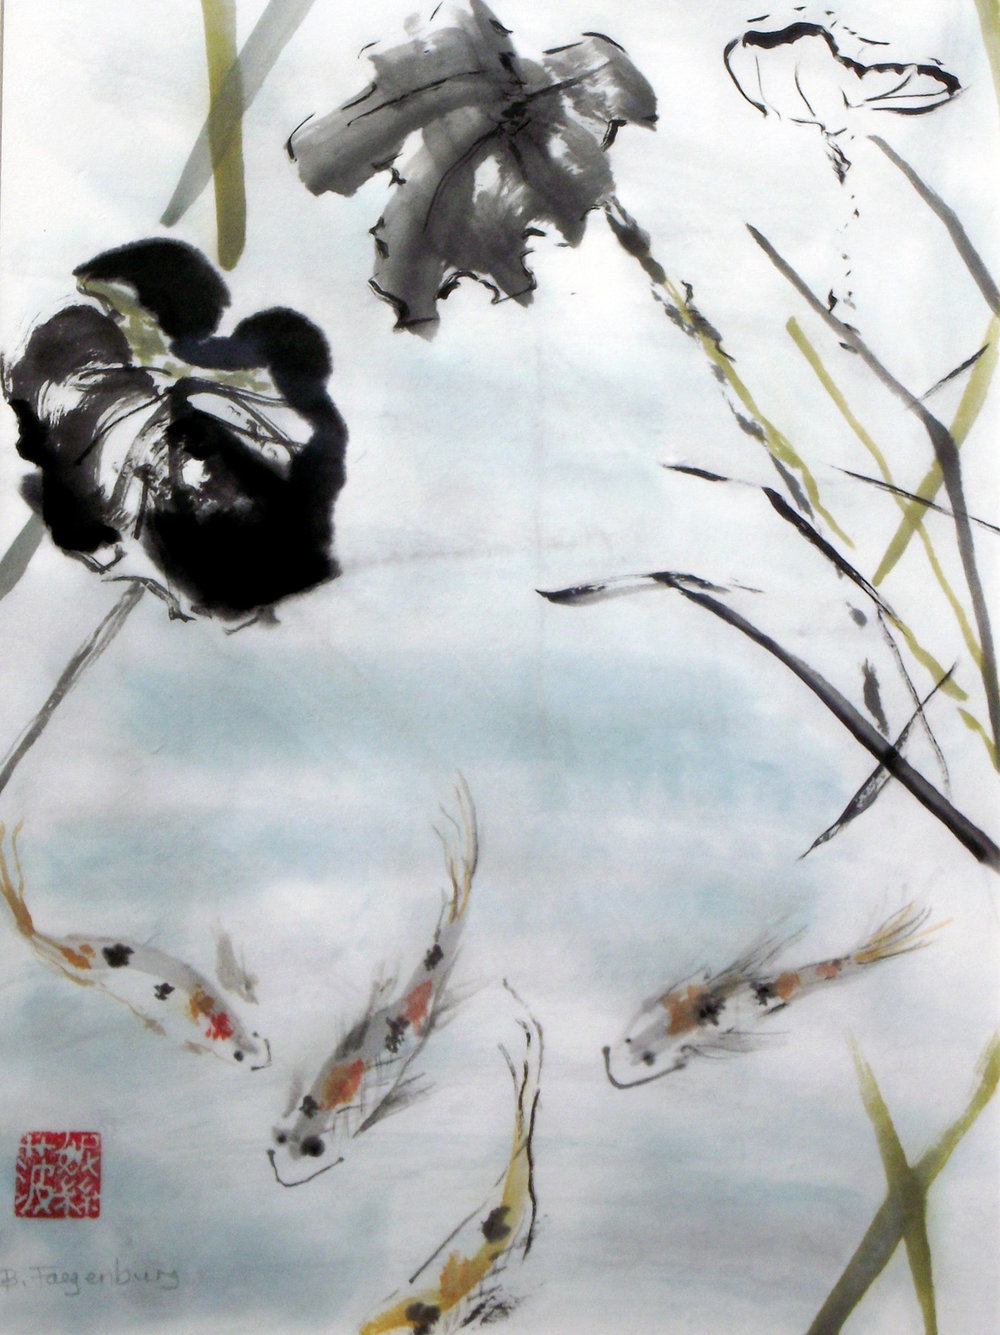 Swimming, 20x24in, Asian brush painting on rice paper